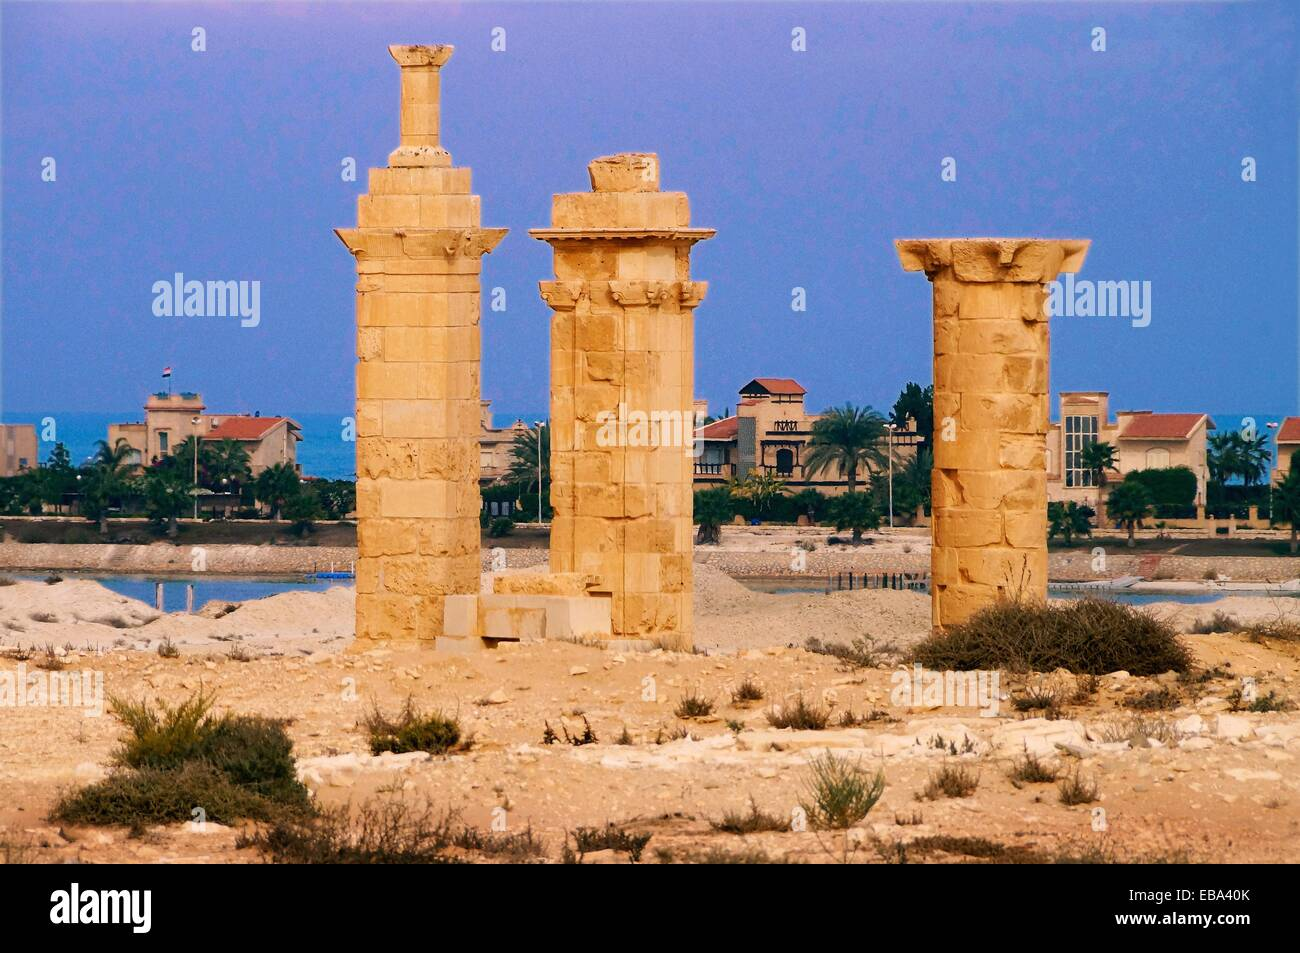 Roman ruins (4th century) by Marina an exclusive beach resort El Alamein Egypt - Stock Image